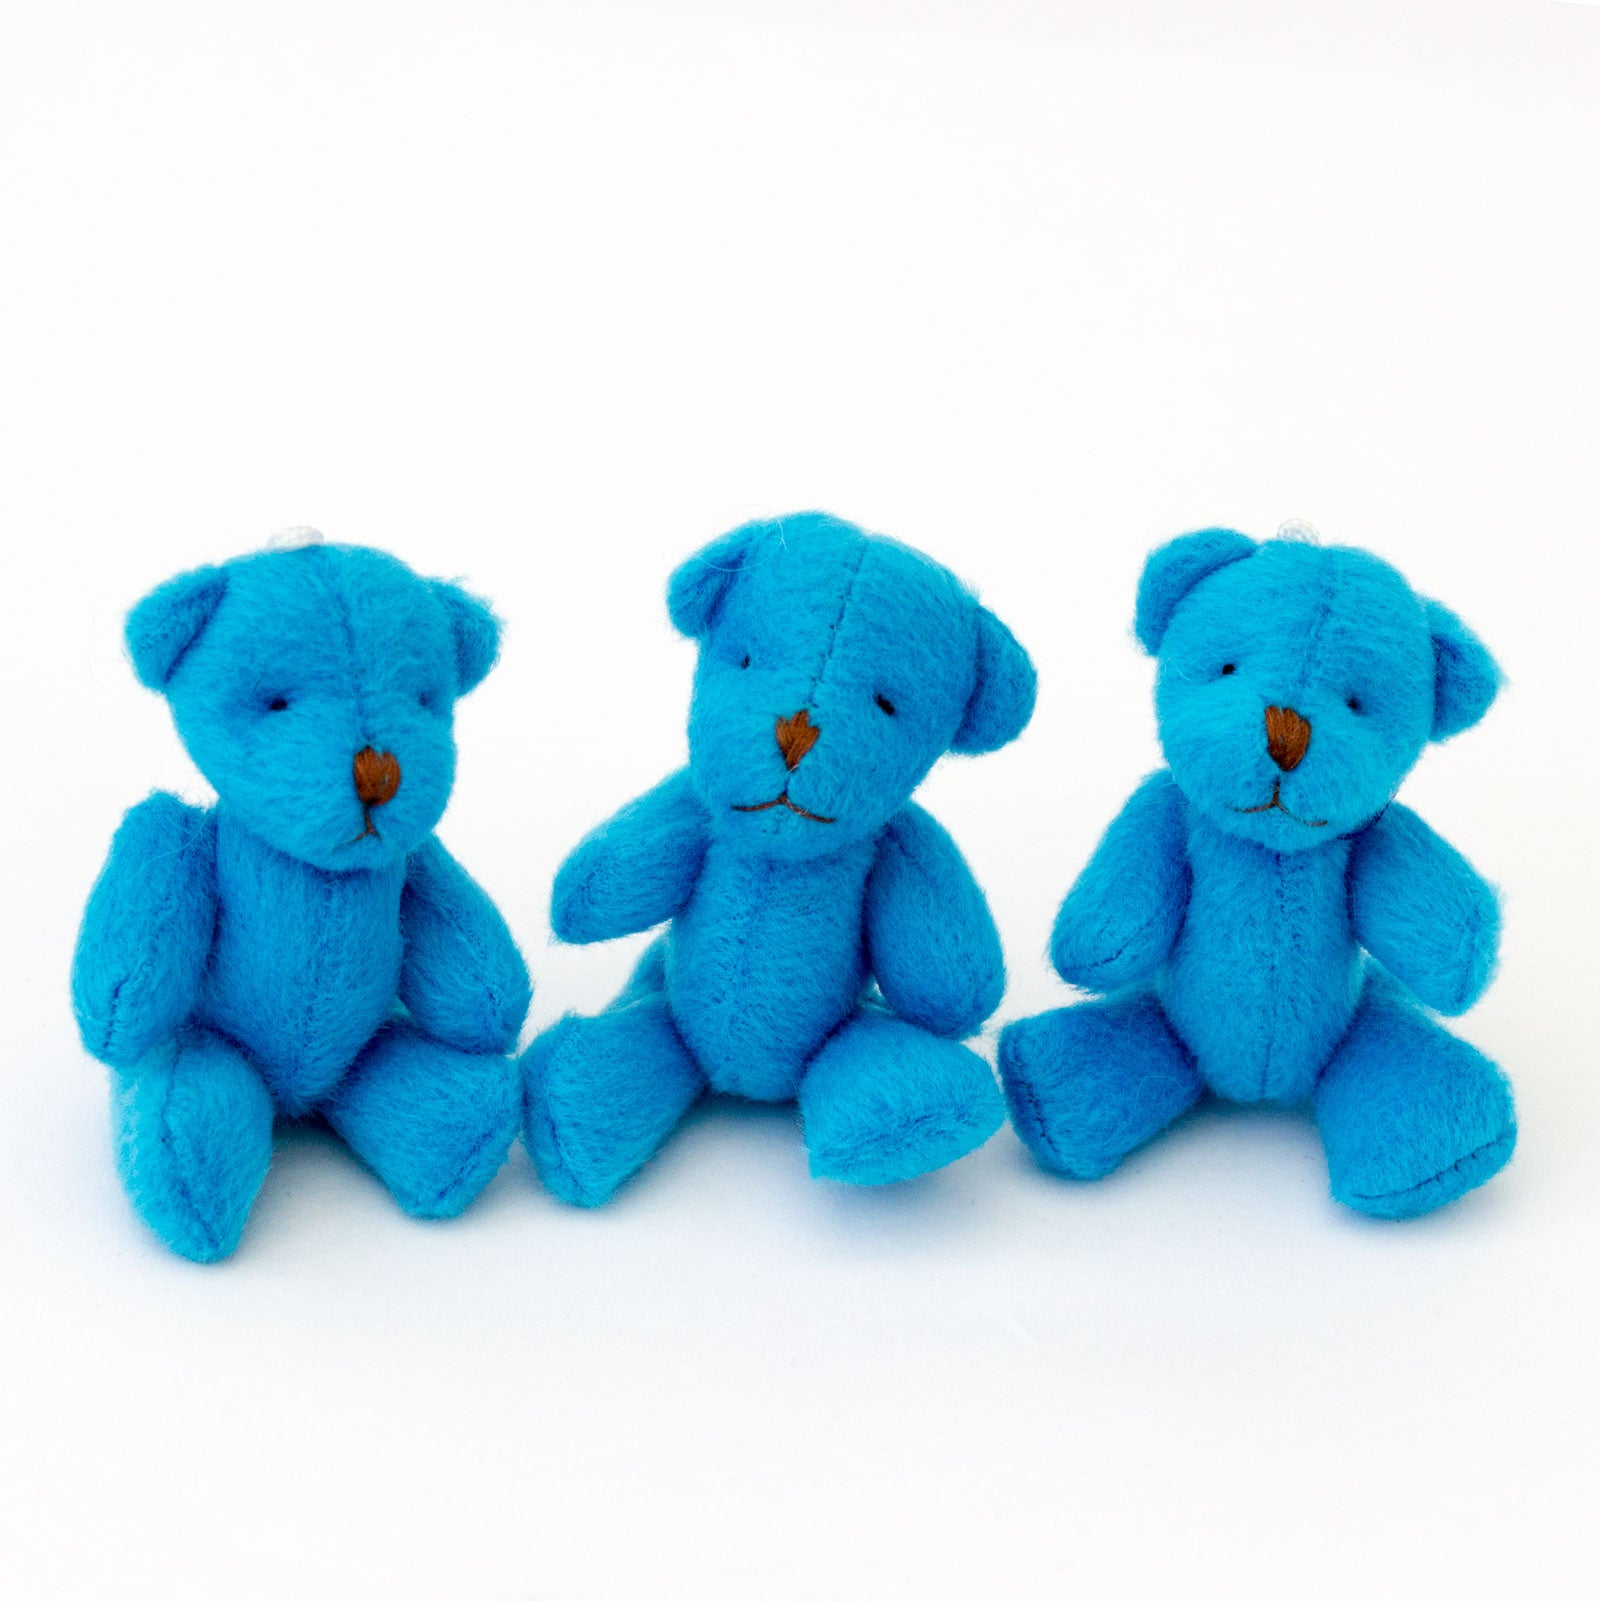 Small BLUE Teddy Bears X 30 - Cute Soft Adorable